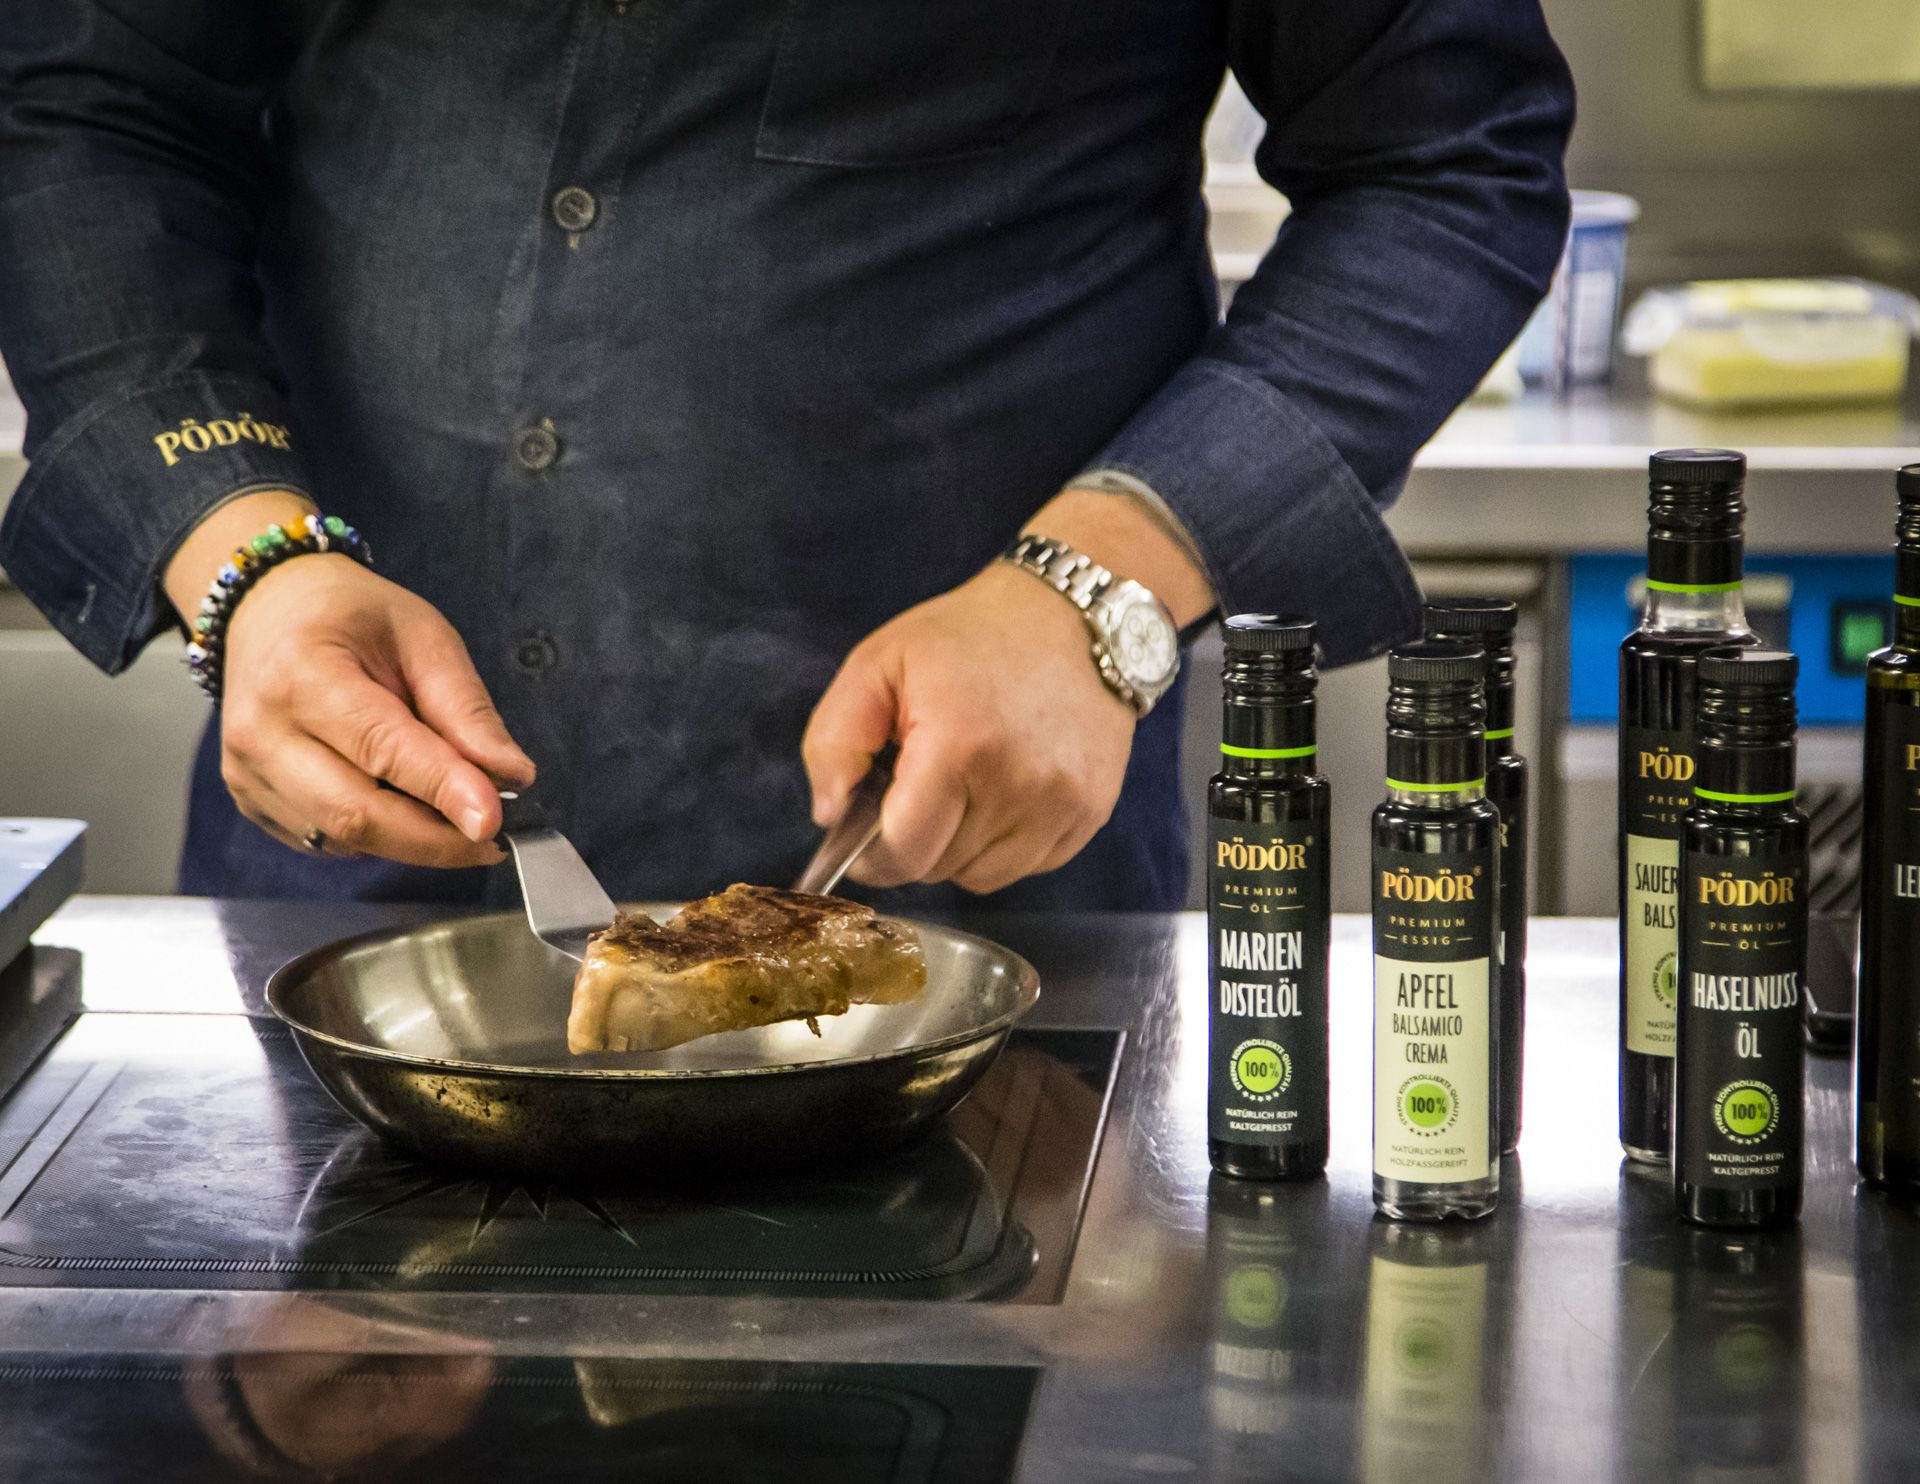 Gentle preparation as an important pillar of a good kitchen: the entrecote was pre-cooked at low temperature and gets its roasted aromas by frying it briefly. At the end of a cooking process, star chef Thomas Bühner also uses the cold-pressed oils from Pödör for flavouring and refining.